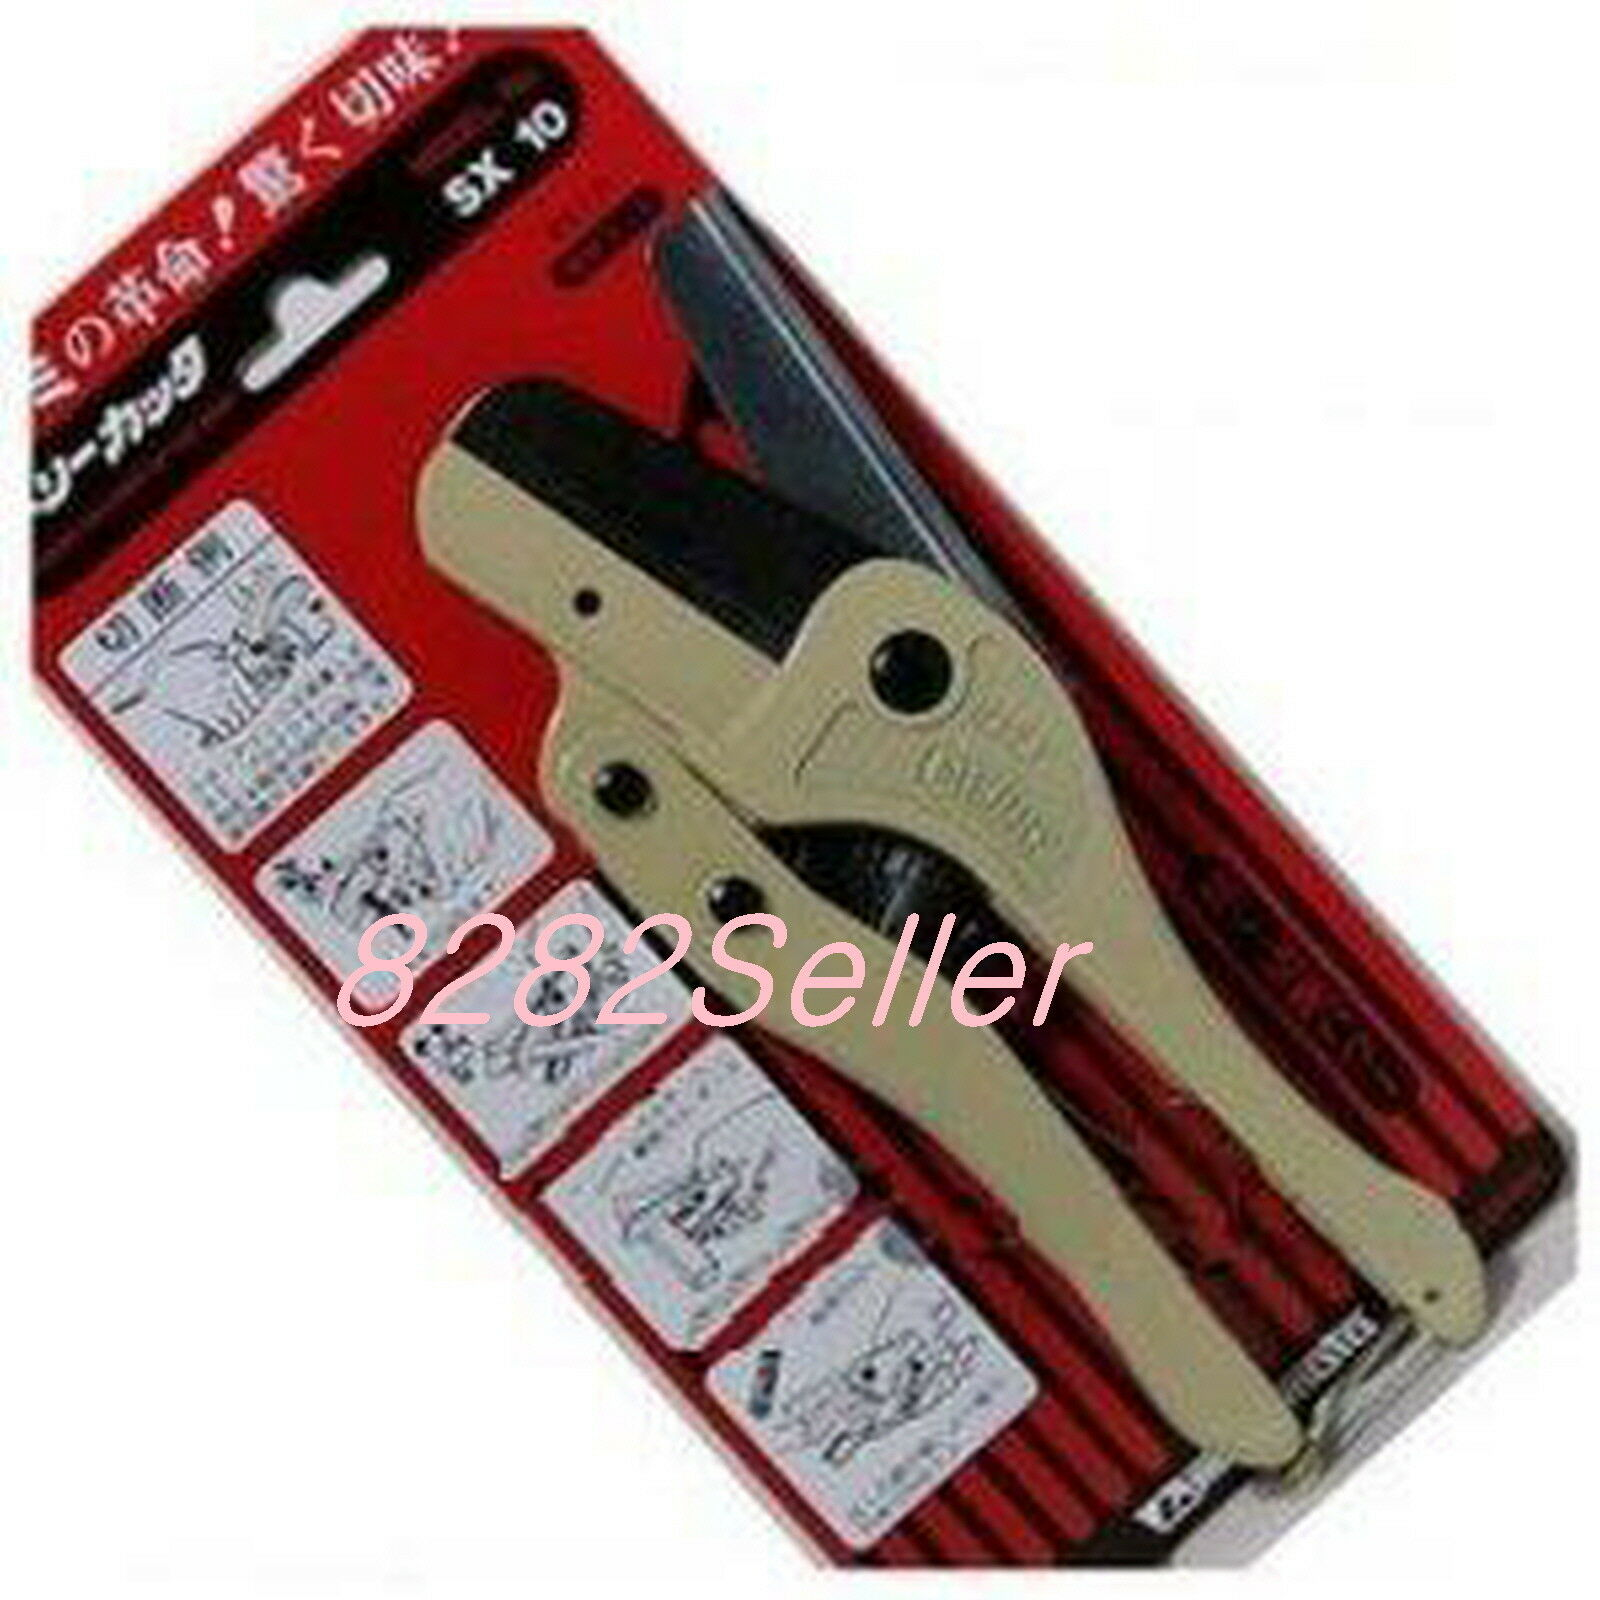 SX10 Long Blade Hand Held Wiring Duct Multifunction Cutter Plastic MERRY 65mm